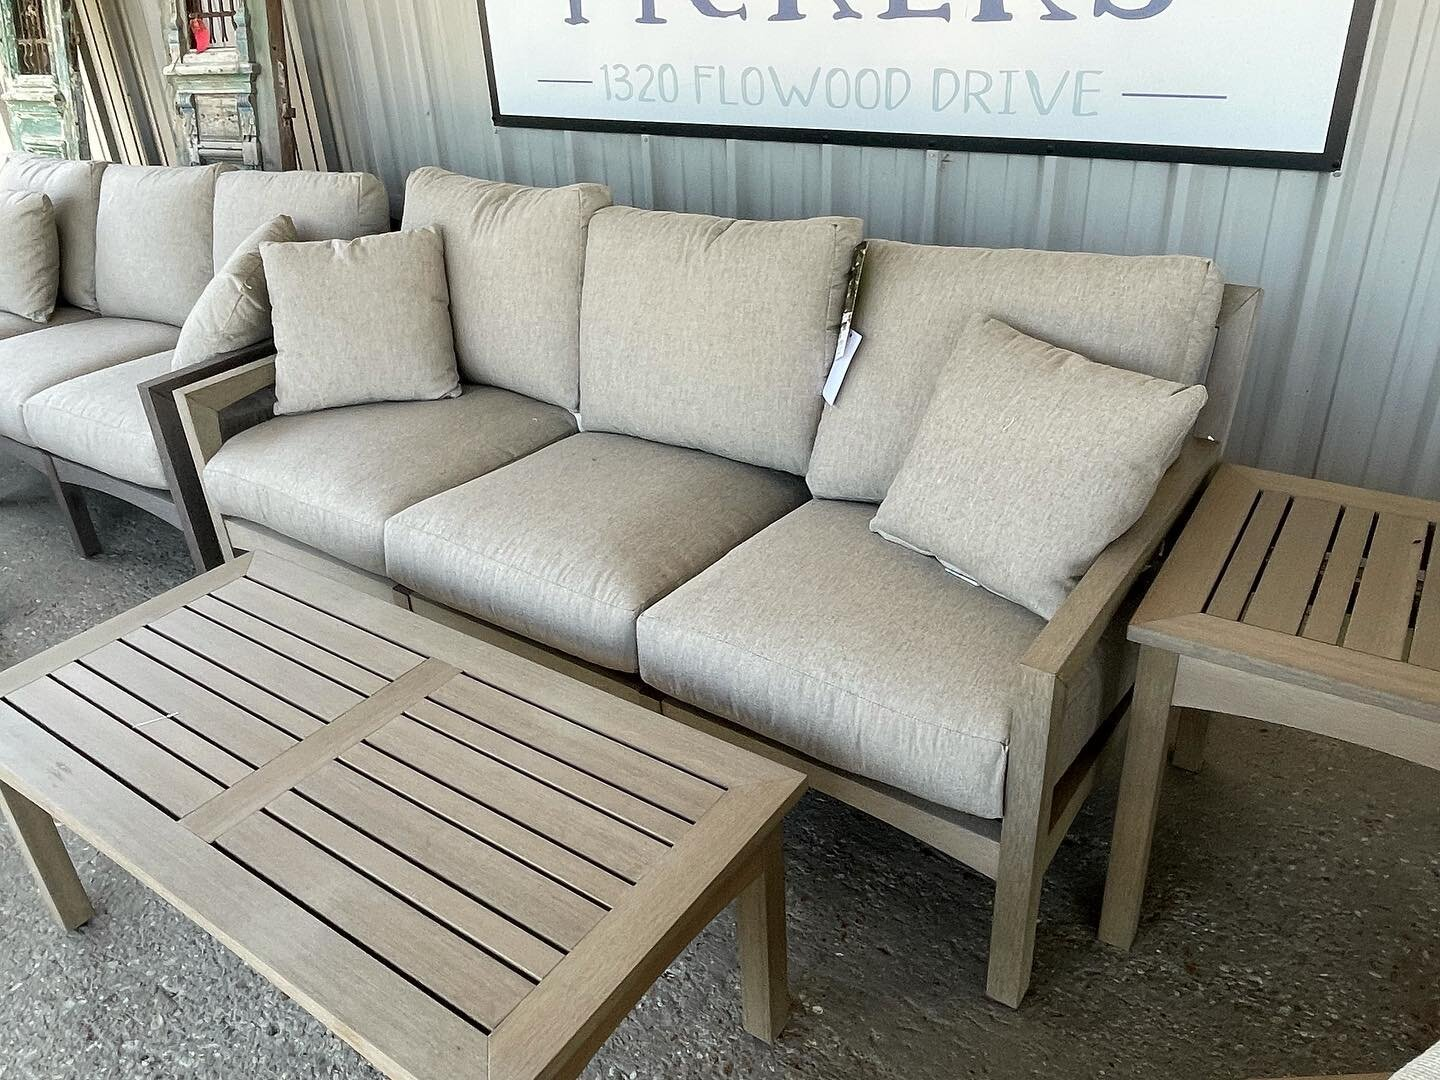 Outdoor sofas and coffee tables  #rossfurniture #itsallatross #supportsmallbusiness #interiordesign #beautifulinteriors #mississippi #mississippihouse